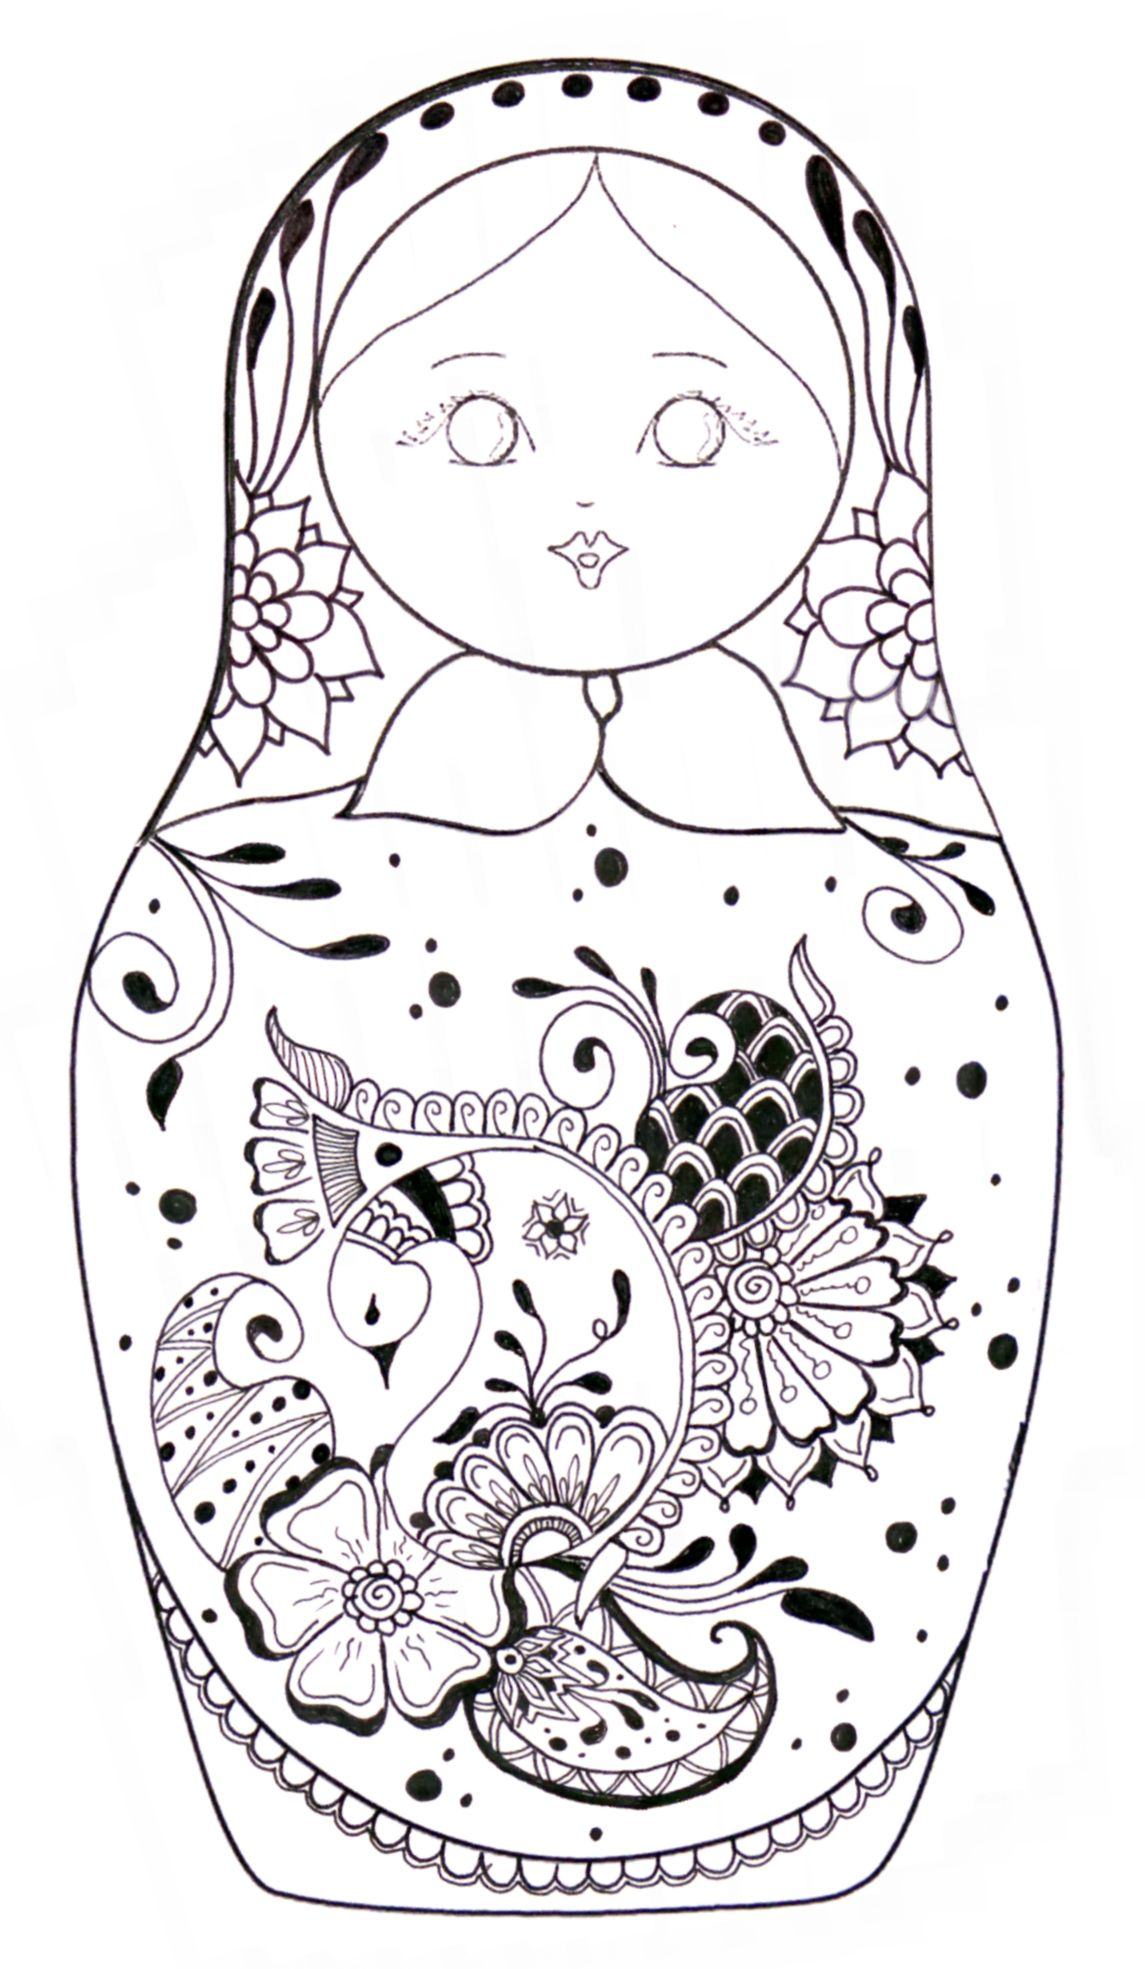 russian folk art coloring pages - photo#10